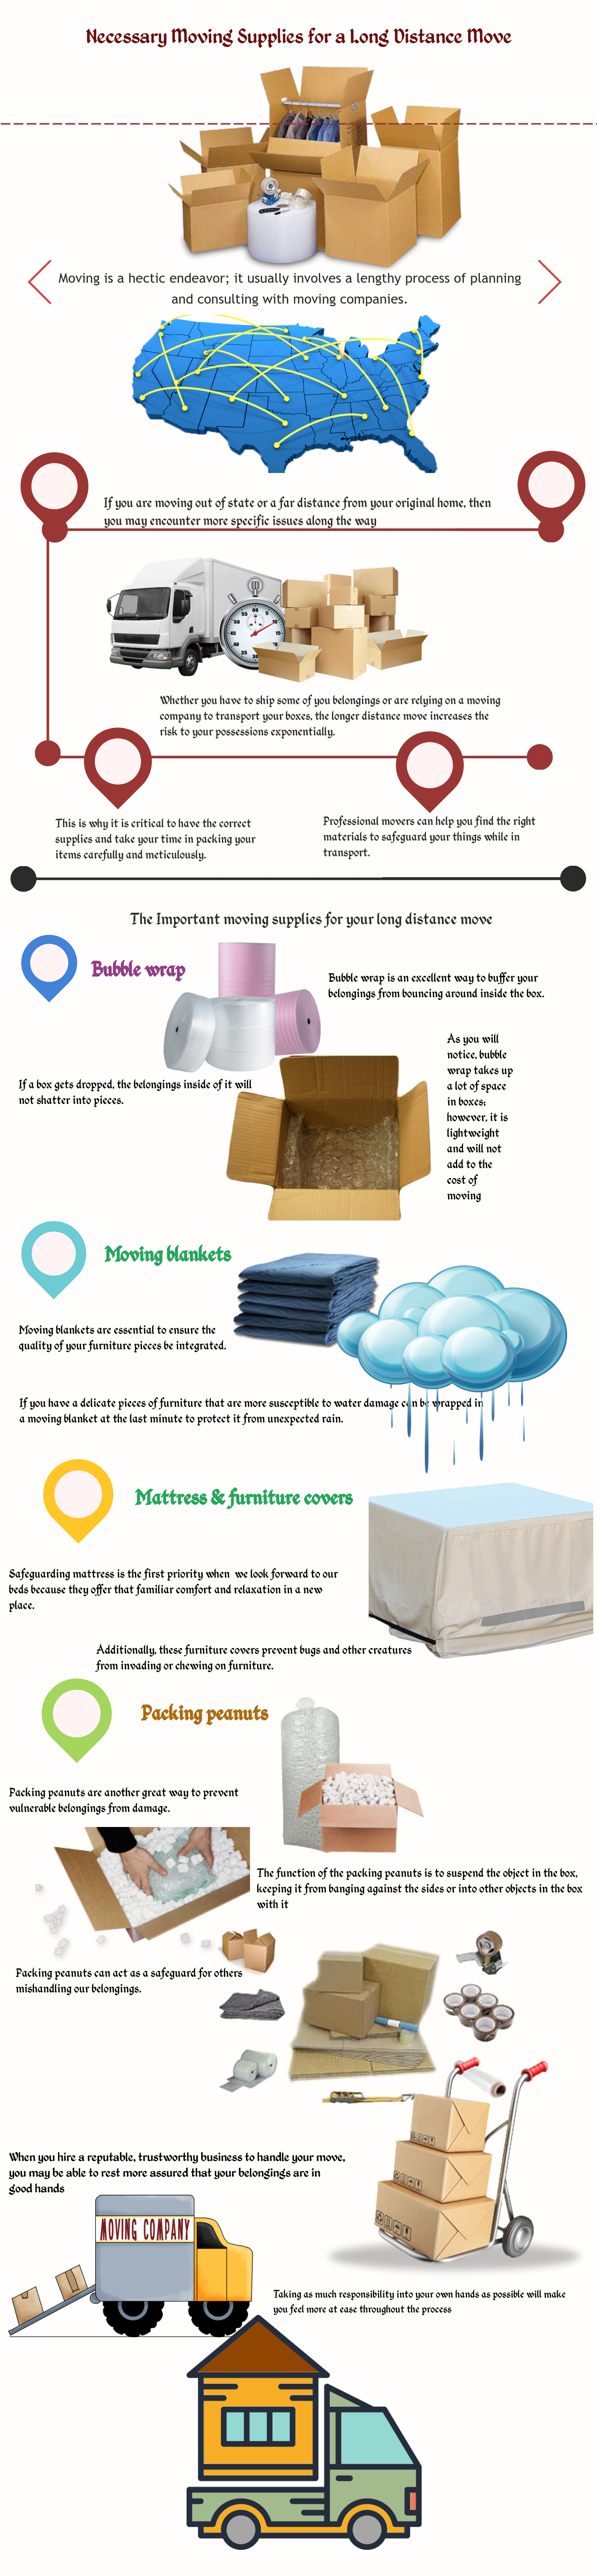 Moving Is Certainly A Tedious Job Where You Undertake A Series Of Complex Tasks At First You Have To Look For An Honest An Moving Company Moving Tips Bubbles